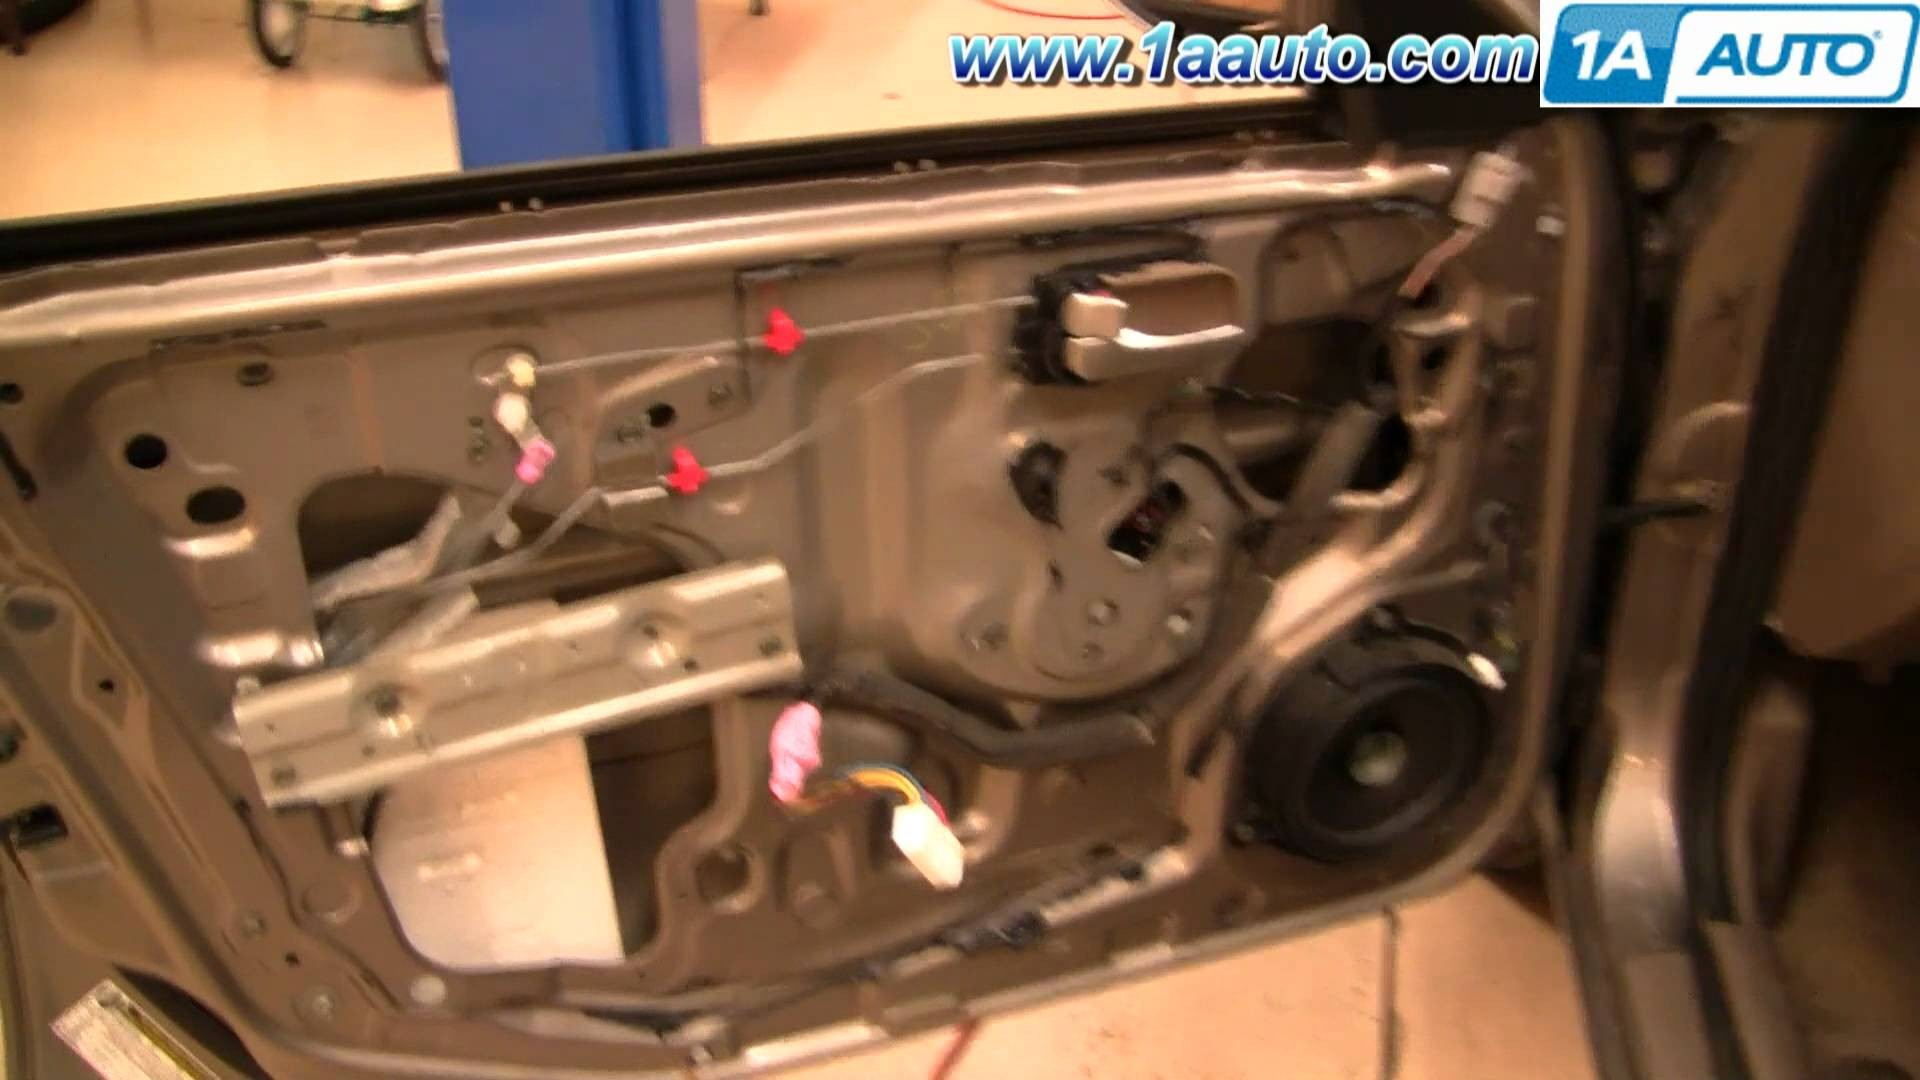 2008 Nissan Sentra Engine Diagram How to Install Replace Power Window Motor or Regulator Nissan Sentra Of 2008 Nissan Sentra Engine Diagram